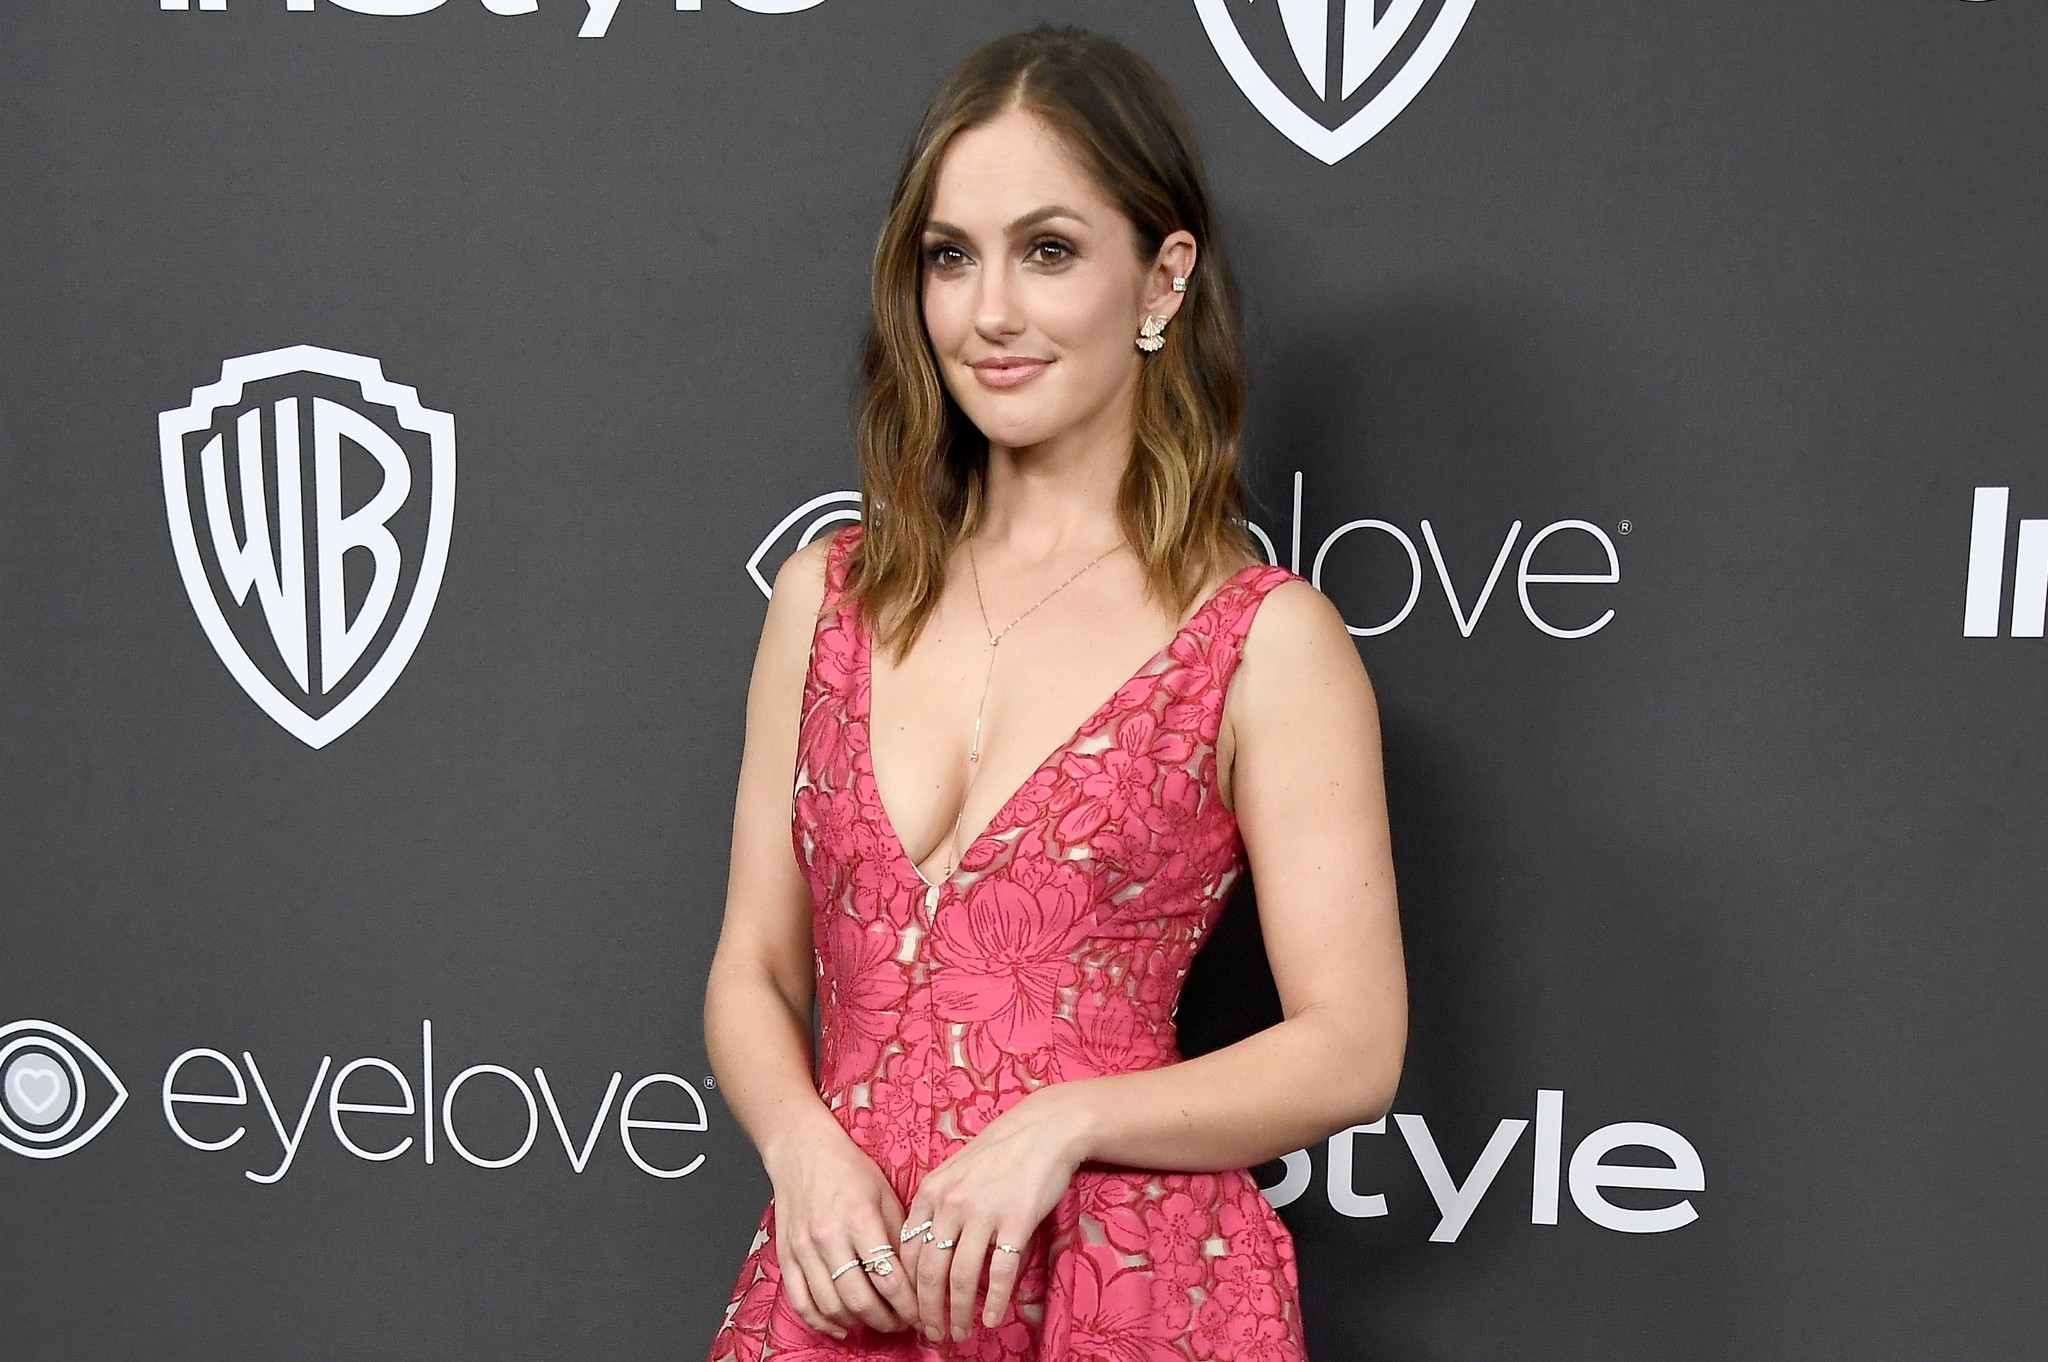 Minka Kelly Minka Kelly new images